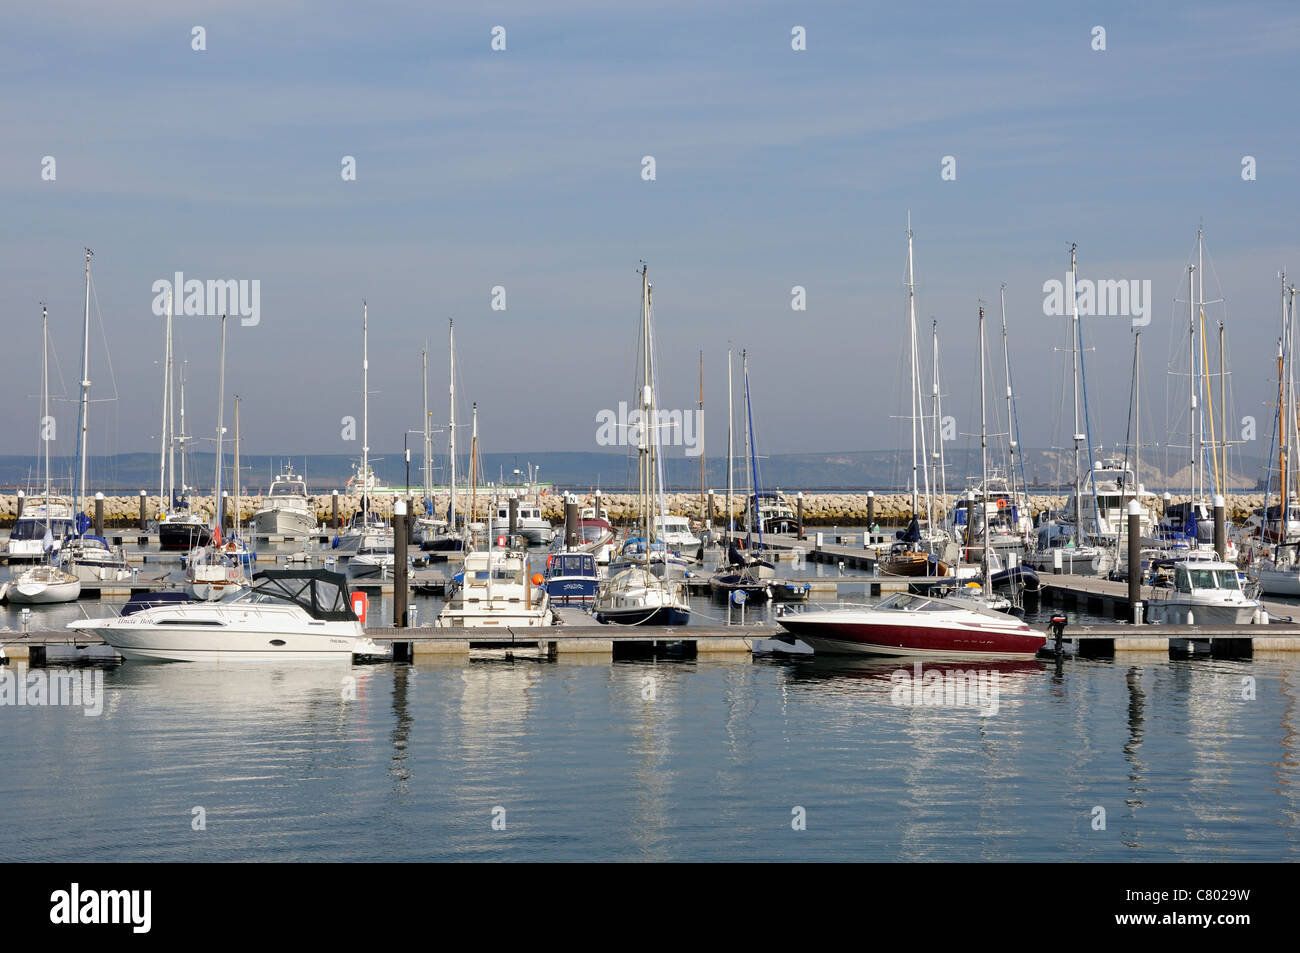 Portland Marina Dorset England where Dean & Reddyhoff the marine operator will have to vacate boats to make - Stock Image